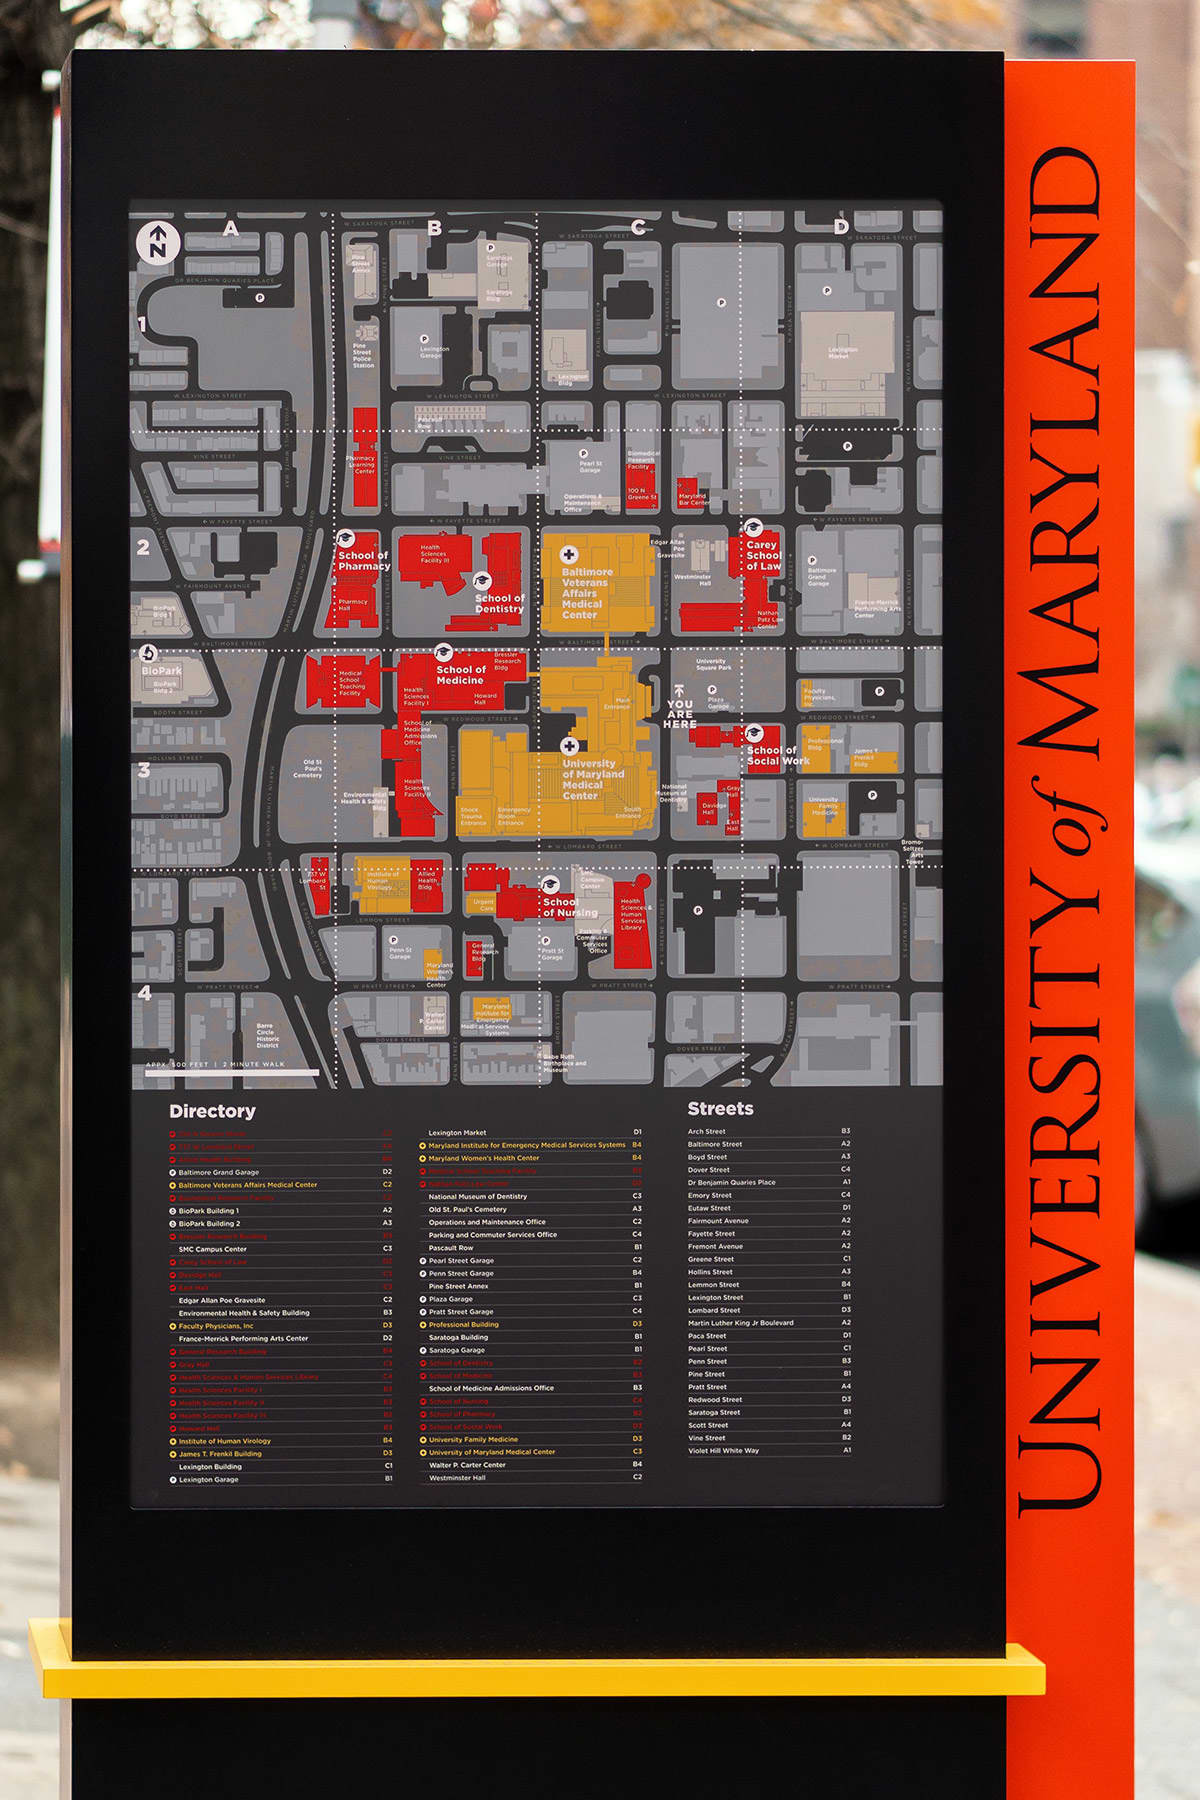 Mapping for The University of Maryland